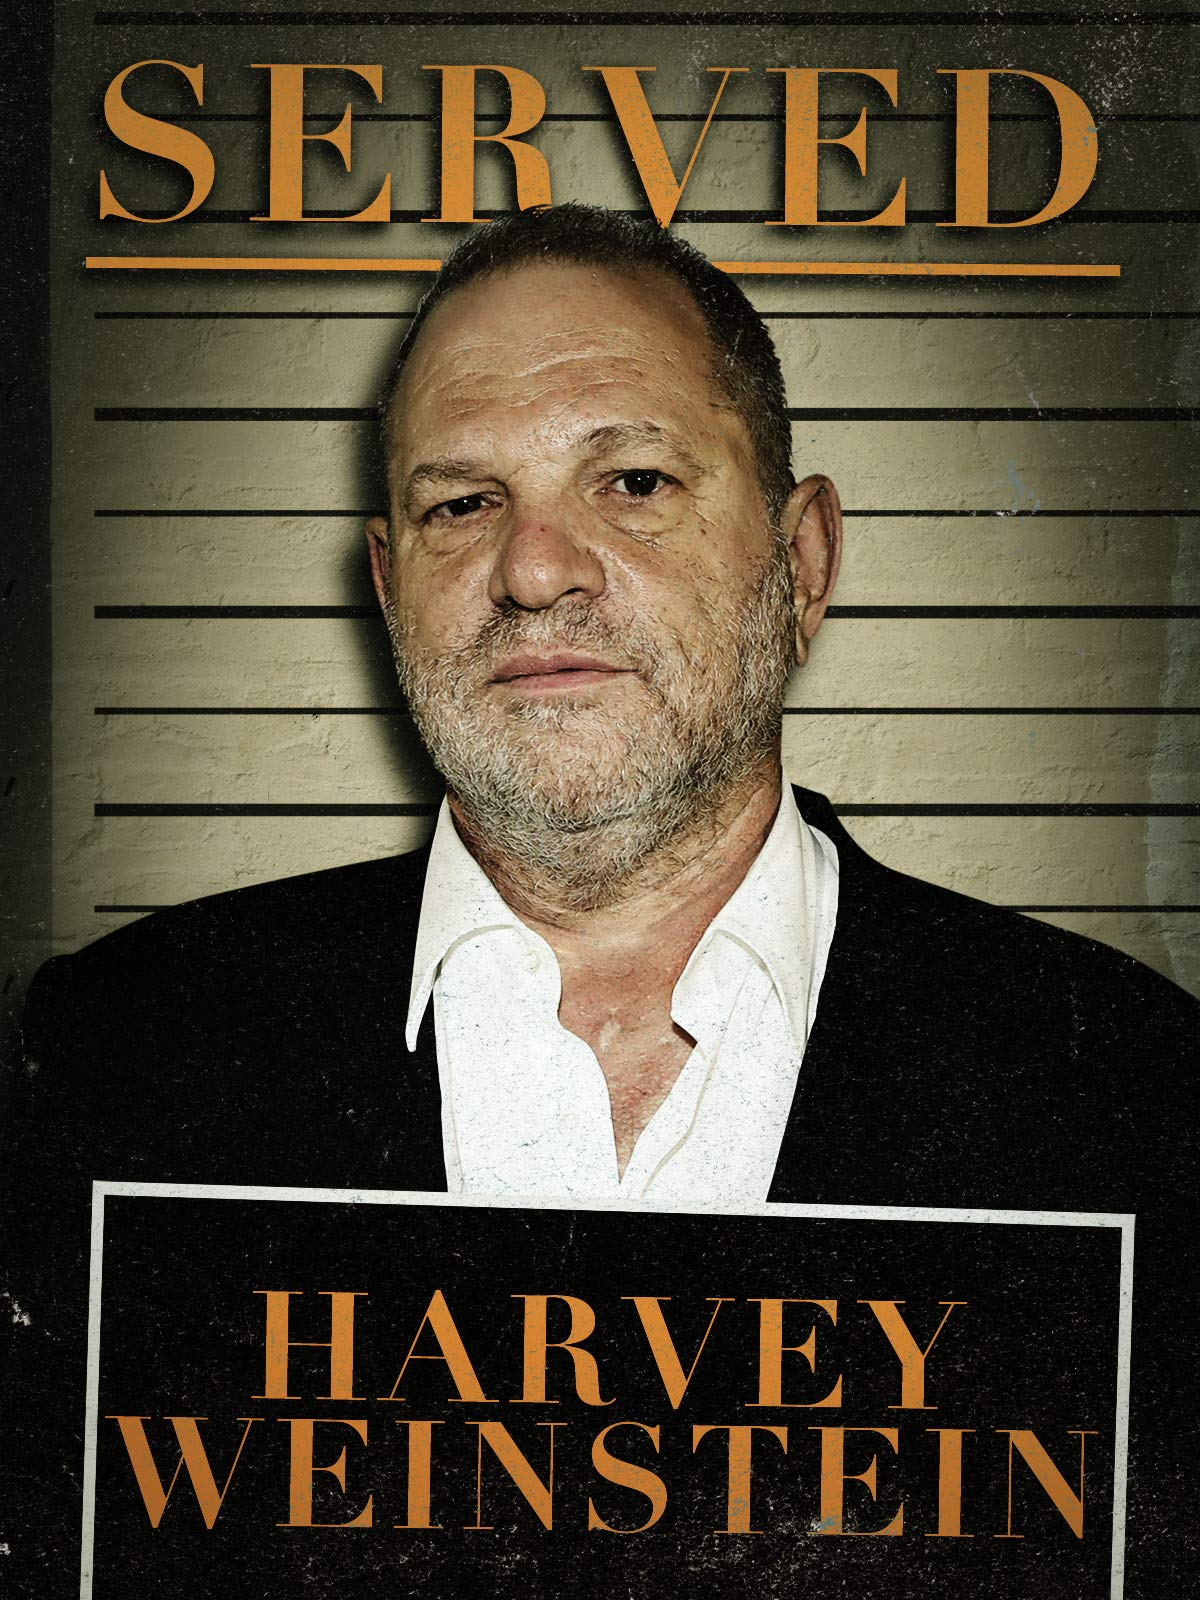 Served: Harvey Weinstein